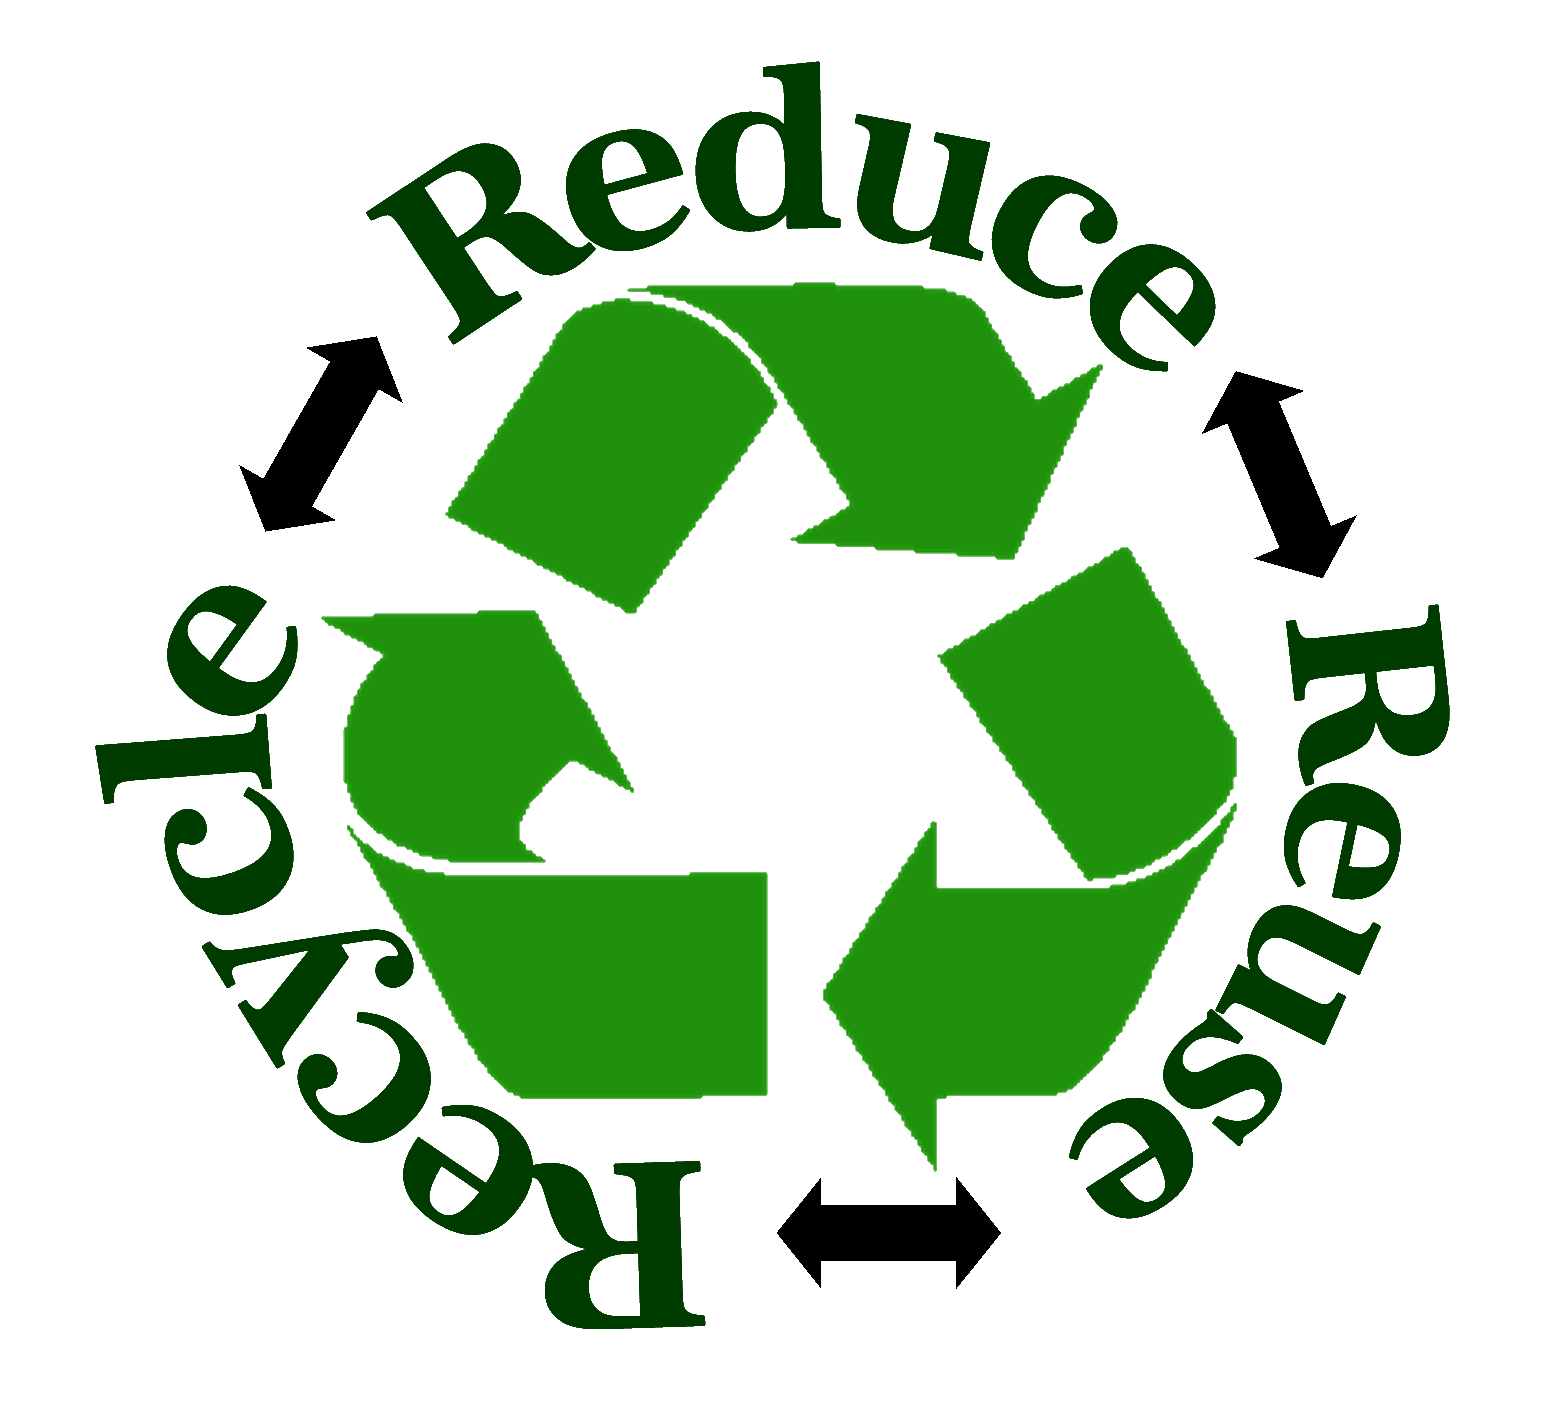 recycle_logo_copy-1 Top 10 Lowest Cost Business Ideas for Beginners